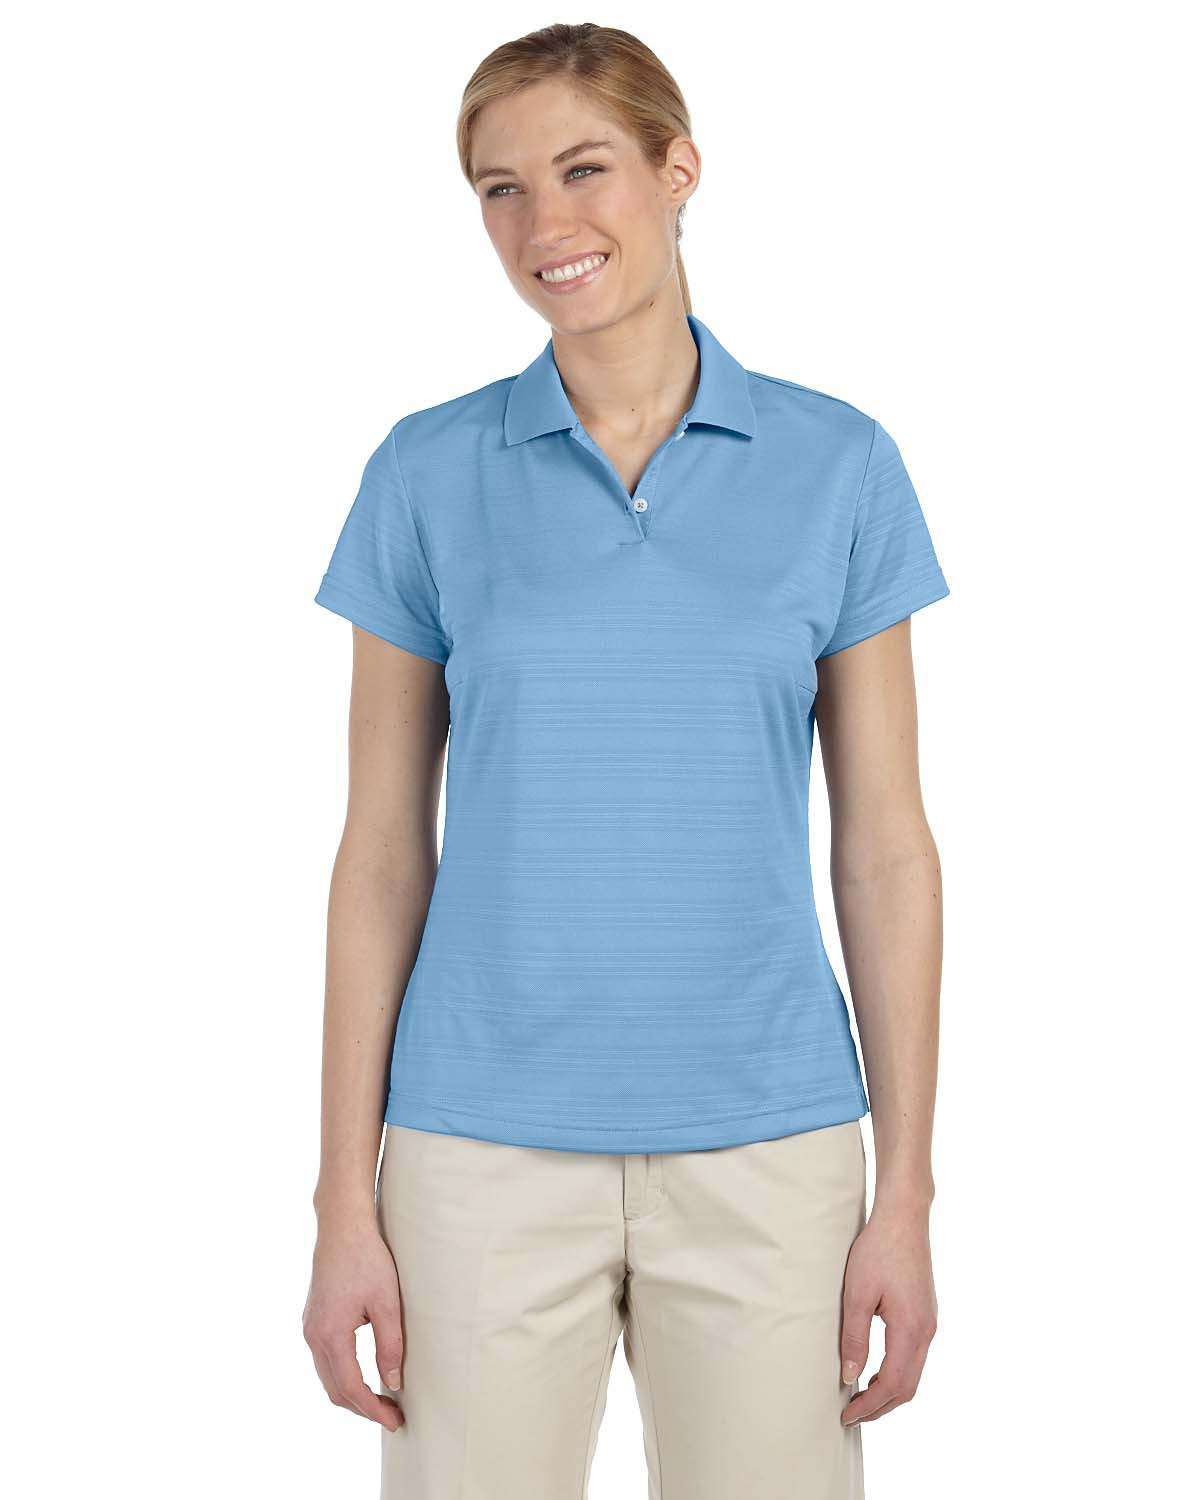 ADIDAS A162 - Ladies' ClimaLite Textured Solid Polo